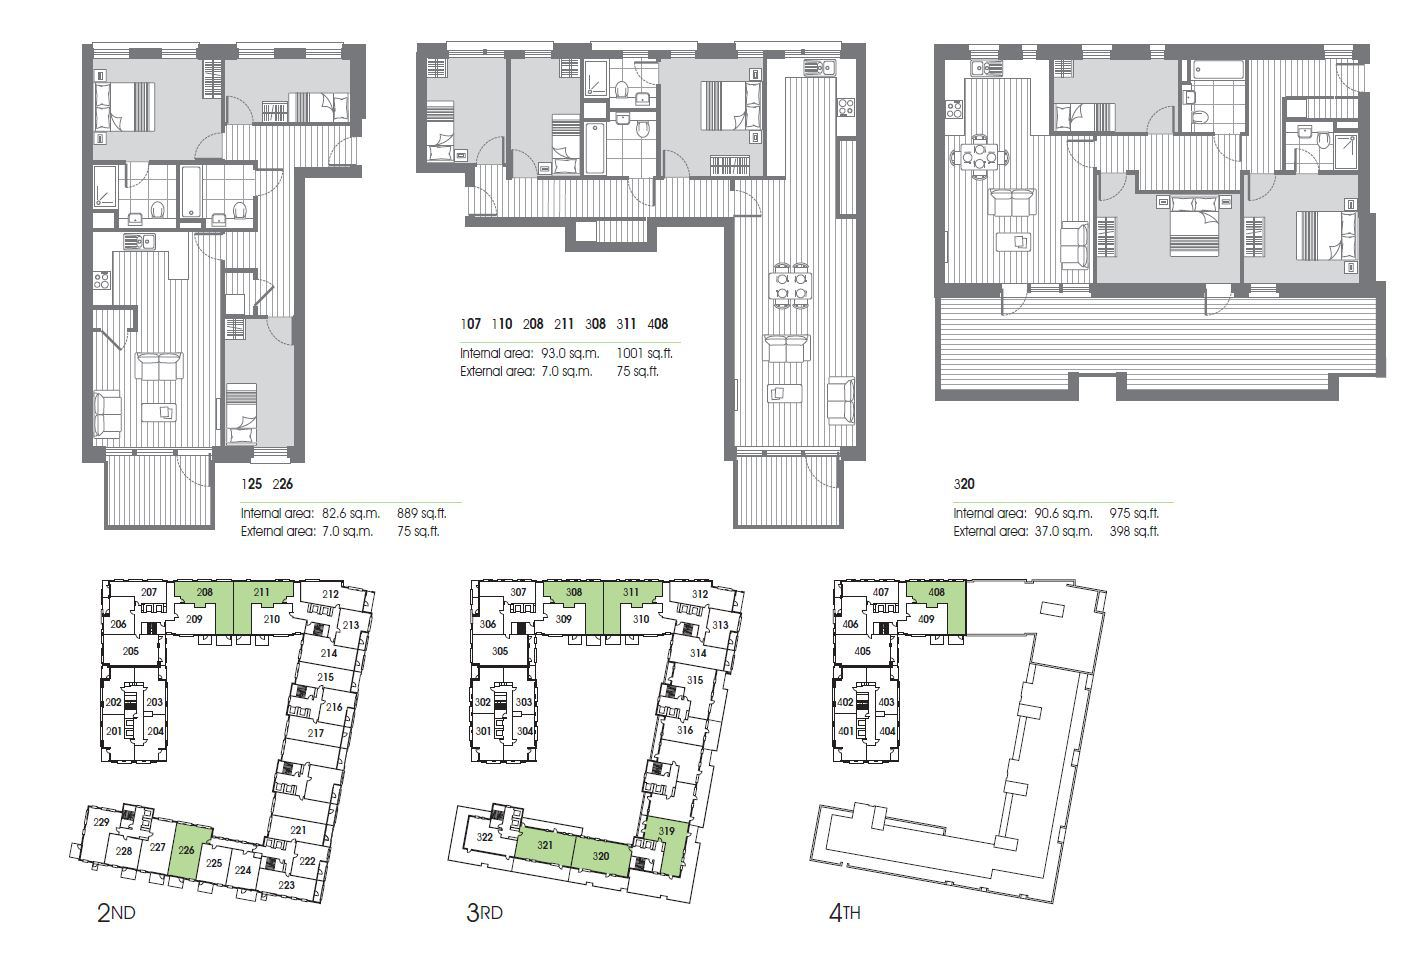 Marina Wharf East London Canary Point - 3 Bedroom Floor Plan